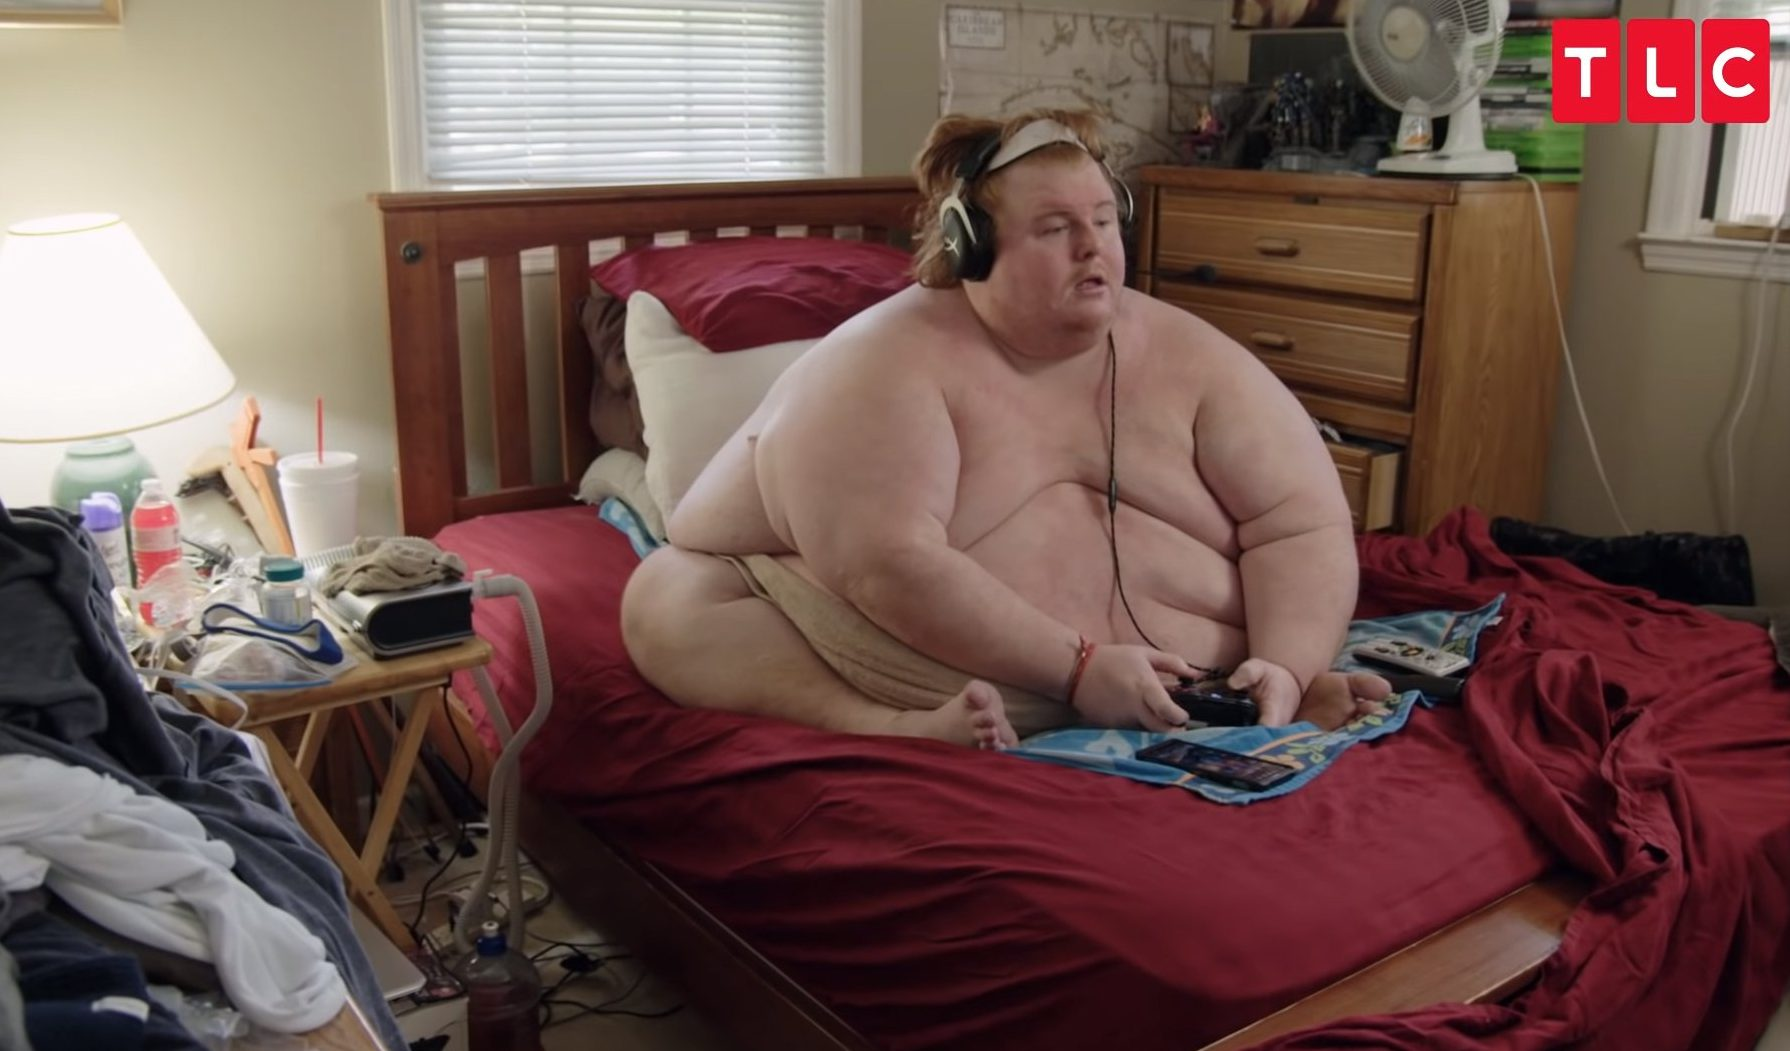 Family by the Ton, a spinoff of TLC's hit reality series My 600-lb Life, follows families struggling sometimes direly with weight issues. Its new season premiering January 2 features, among others, Casey King, who weighs over 700 pounds and lives with his father in Georgia.